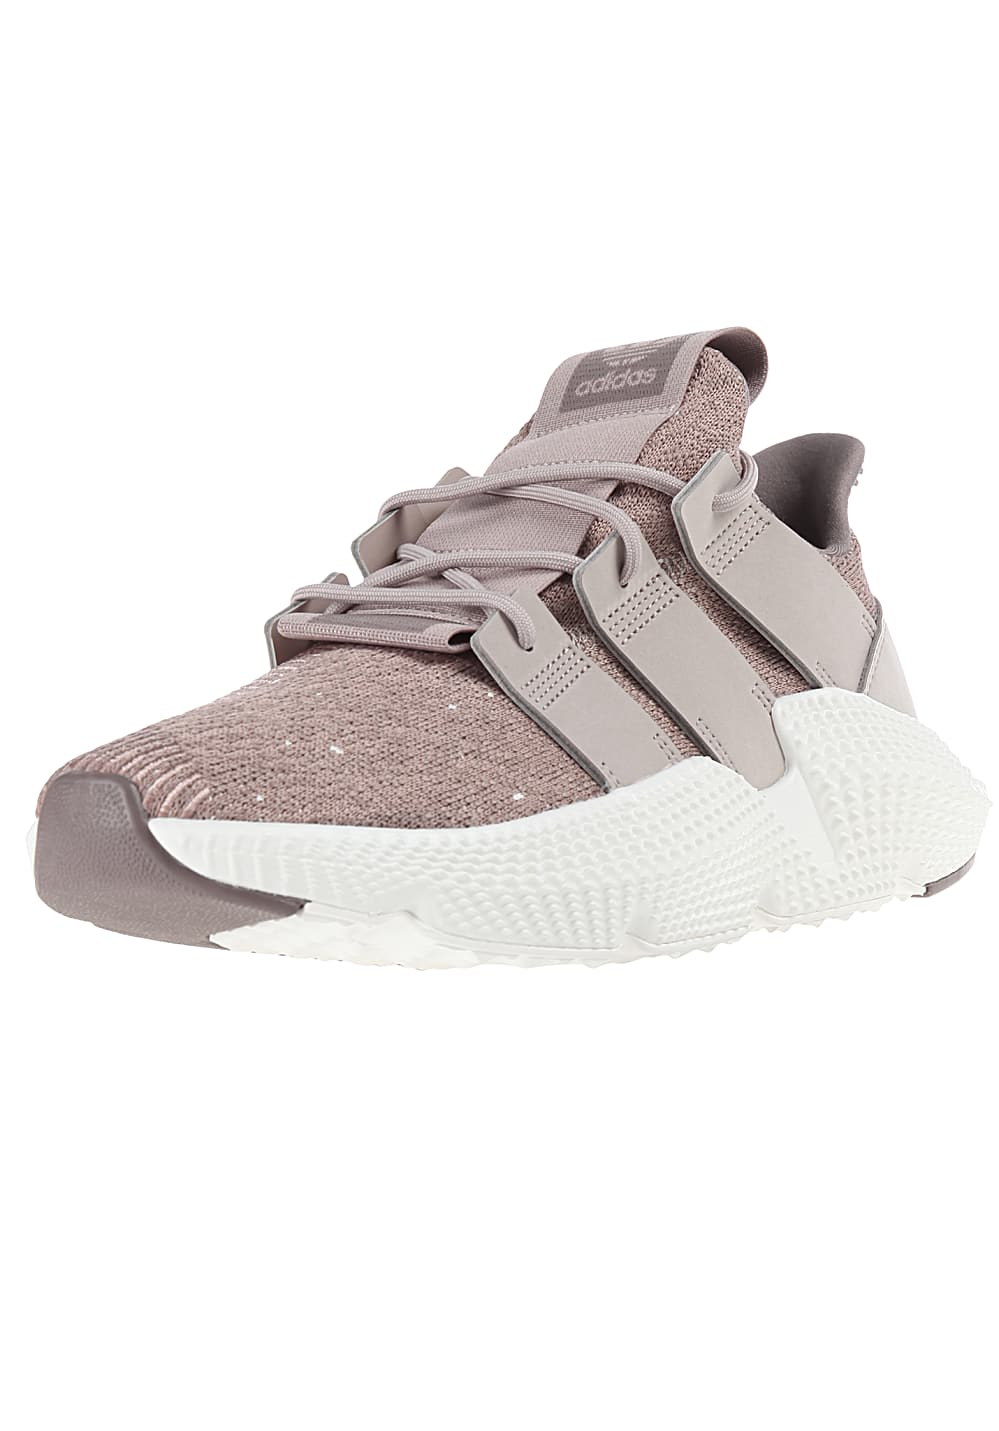 Adidas Prophere Trainers Vapour GreyTech Earth